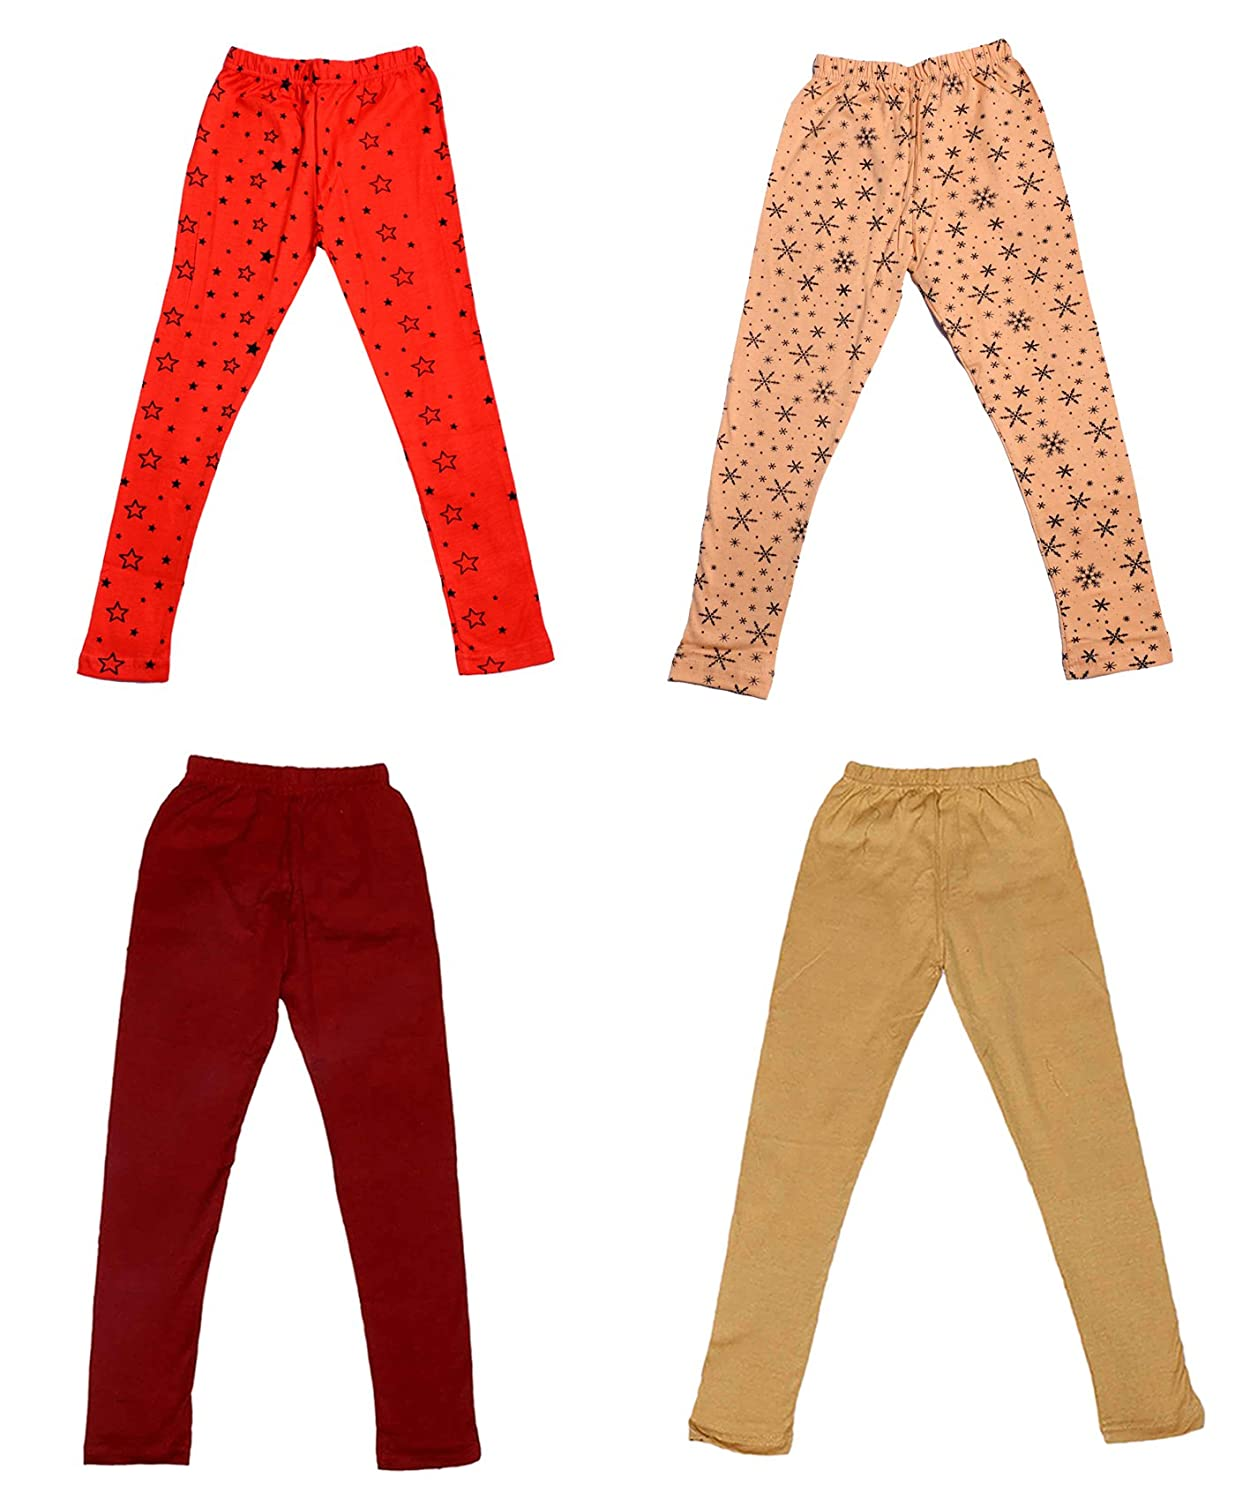 /_Multicolor/_Size-4-5 Years/_71400011619-IW-P4-26 Pack Of 4 Indistar Girls 2 Cotton Solid Legging Pants and 2 Cotton Printed Legging Pants